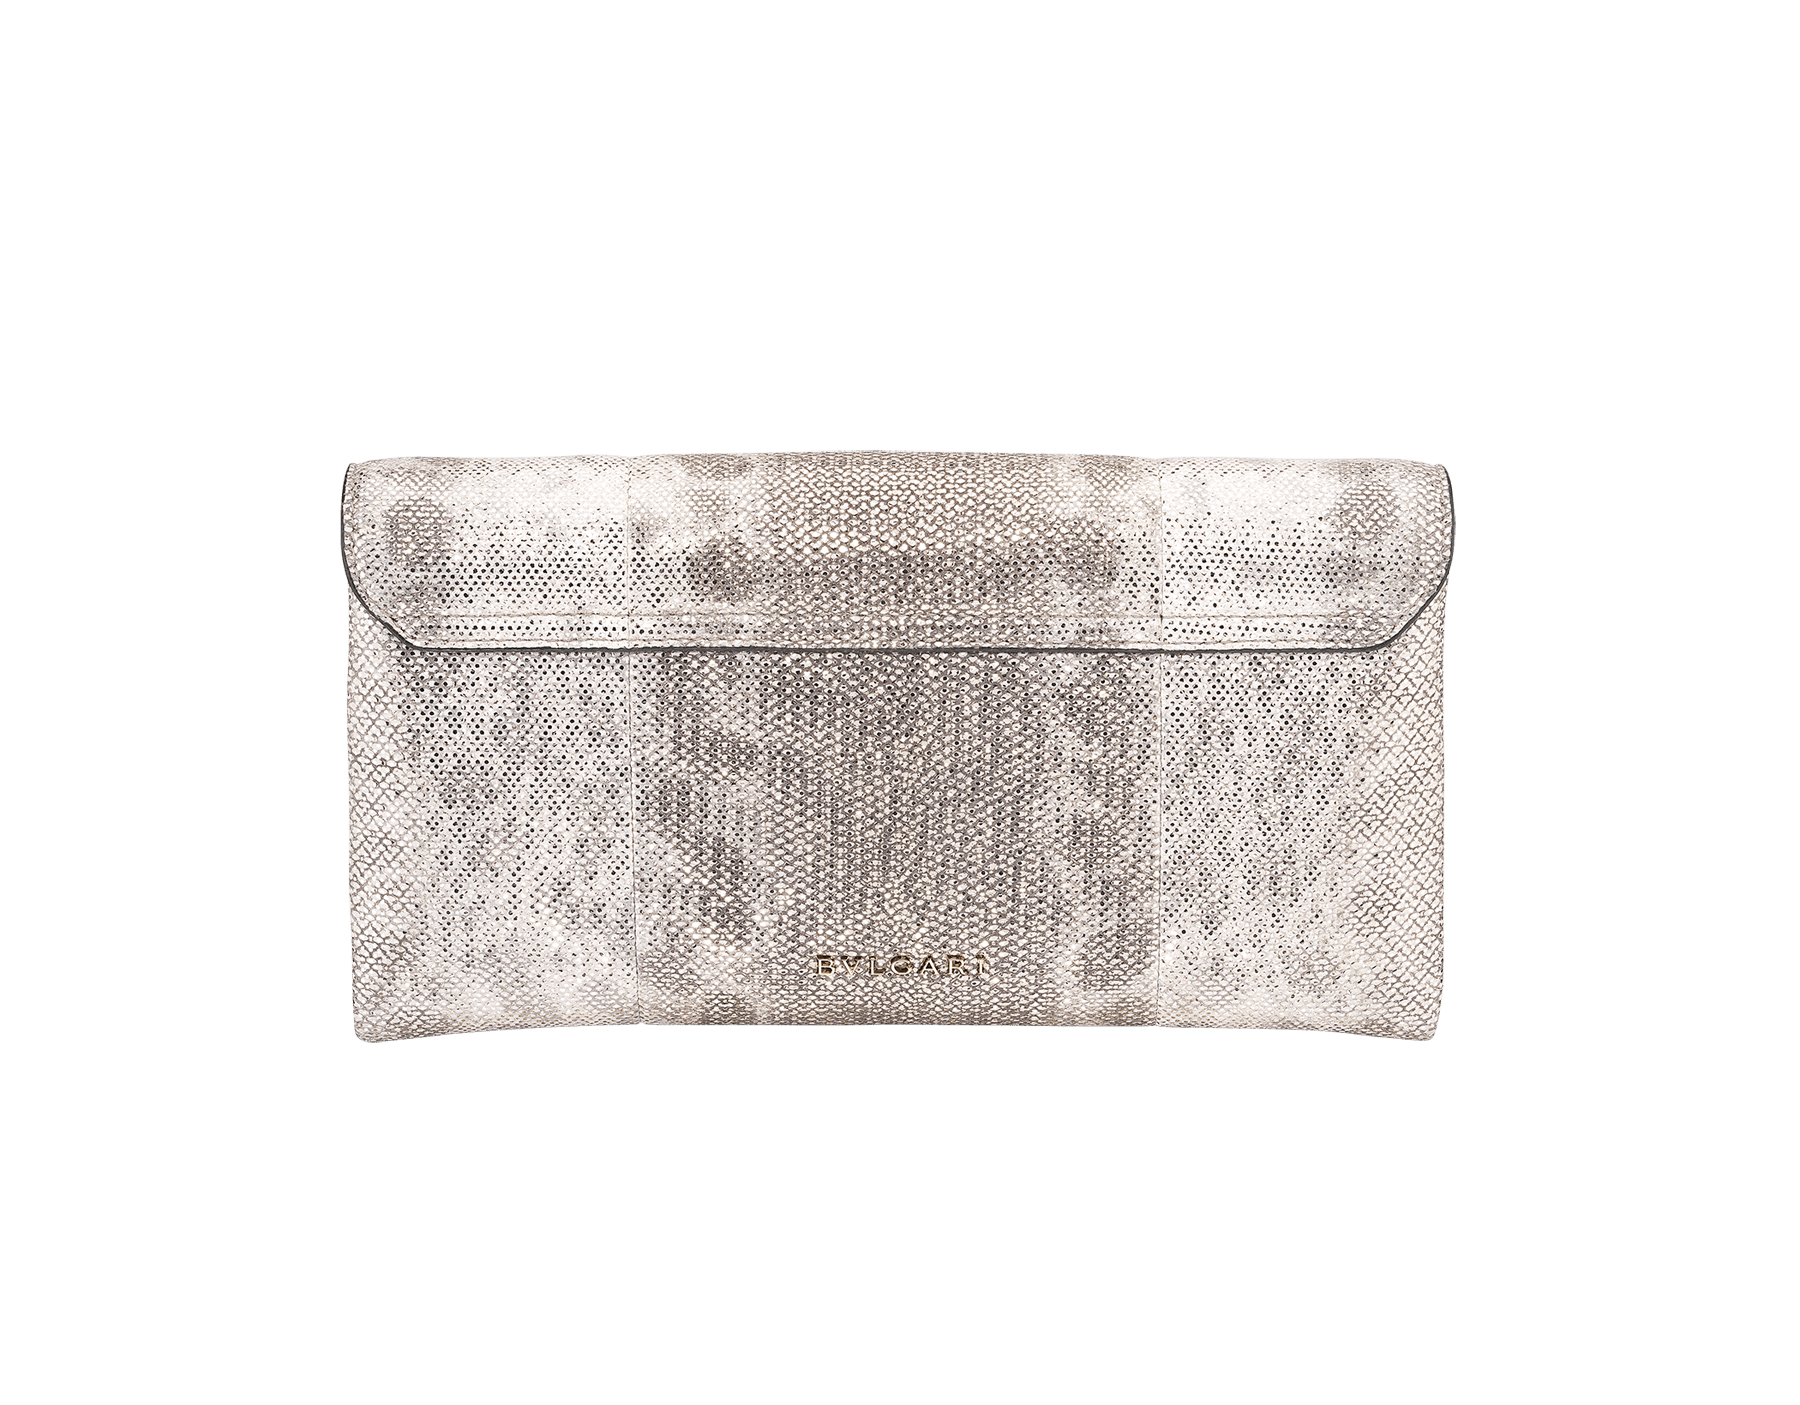 Serpenti evening clutch in milky opal metallic karung skin. Snakehead stud closure with tassel in light gold plated brass and top decorated with black and glitter milky opal enamel, and black onyx eyes. 526-001-0817S-MK image 3